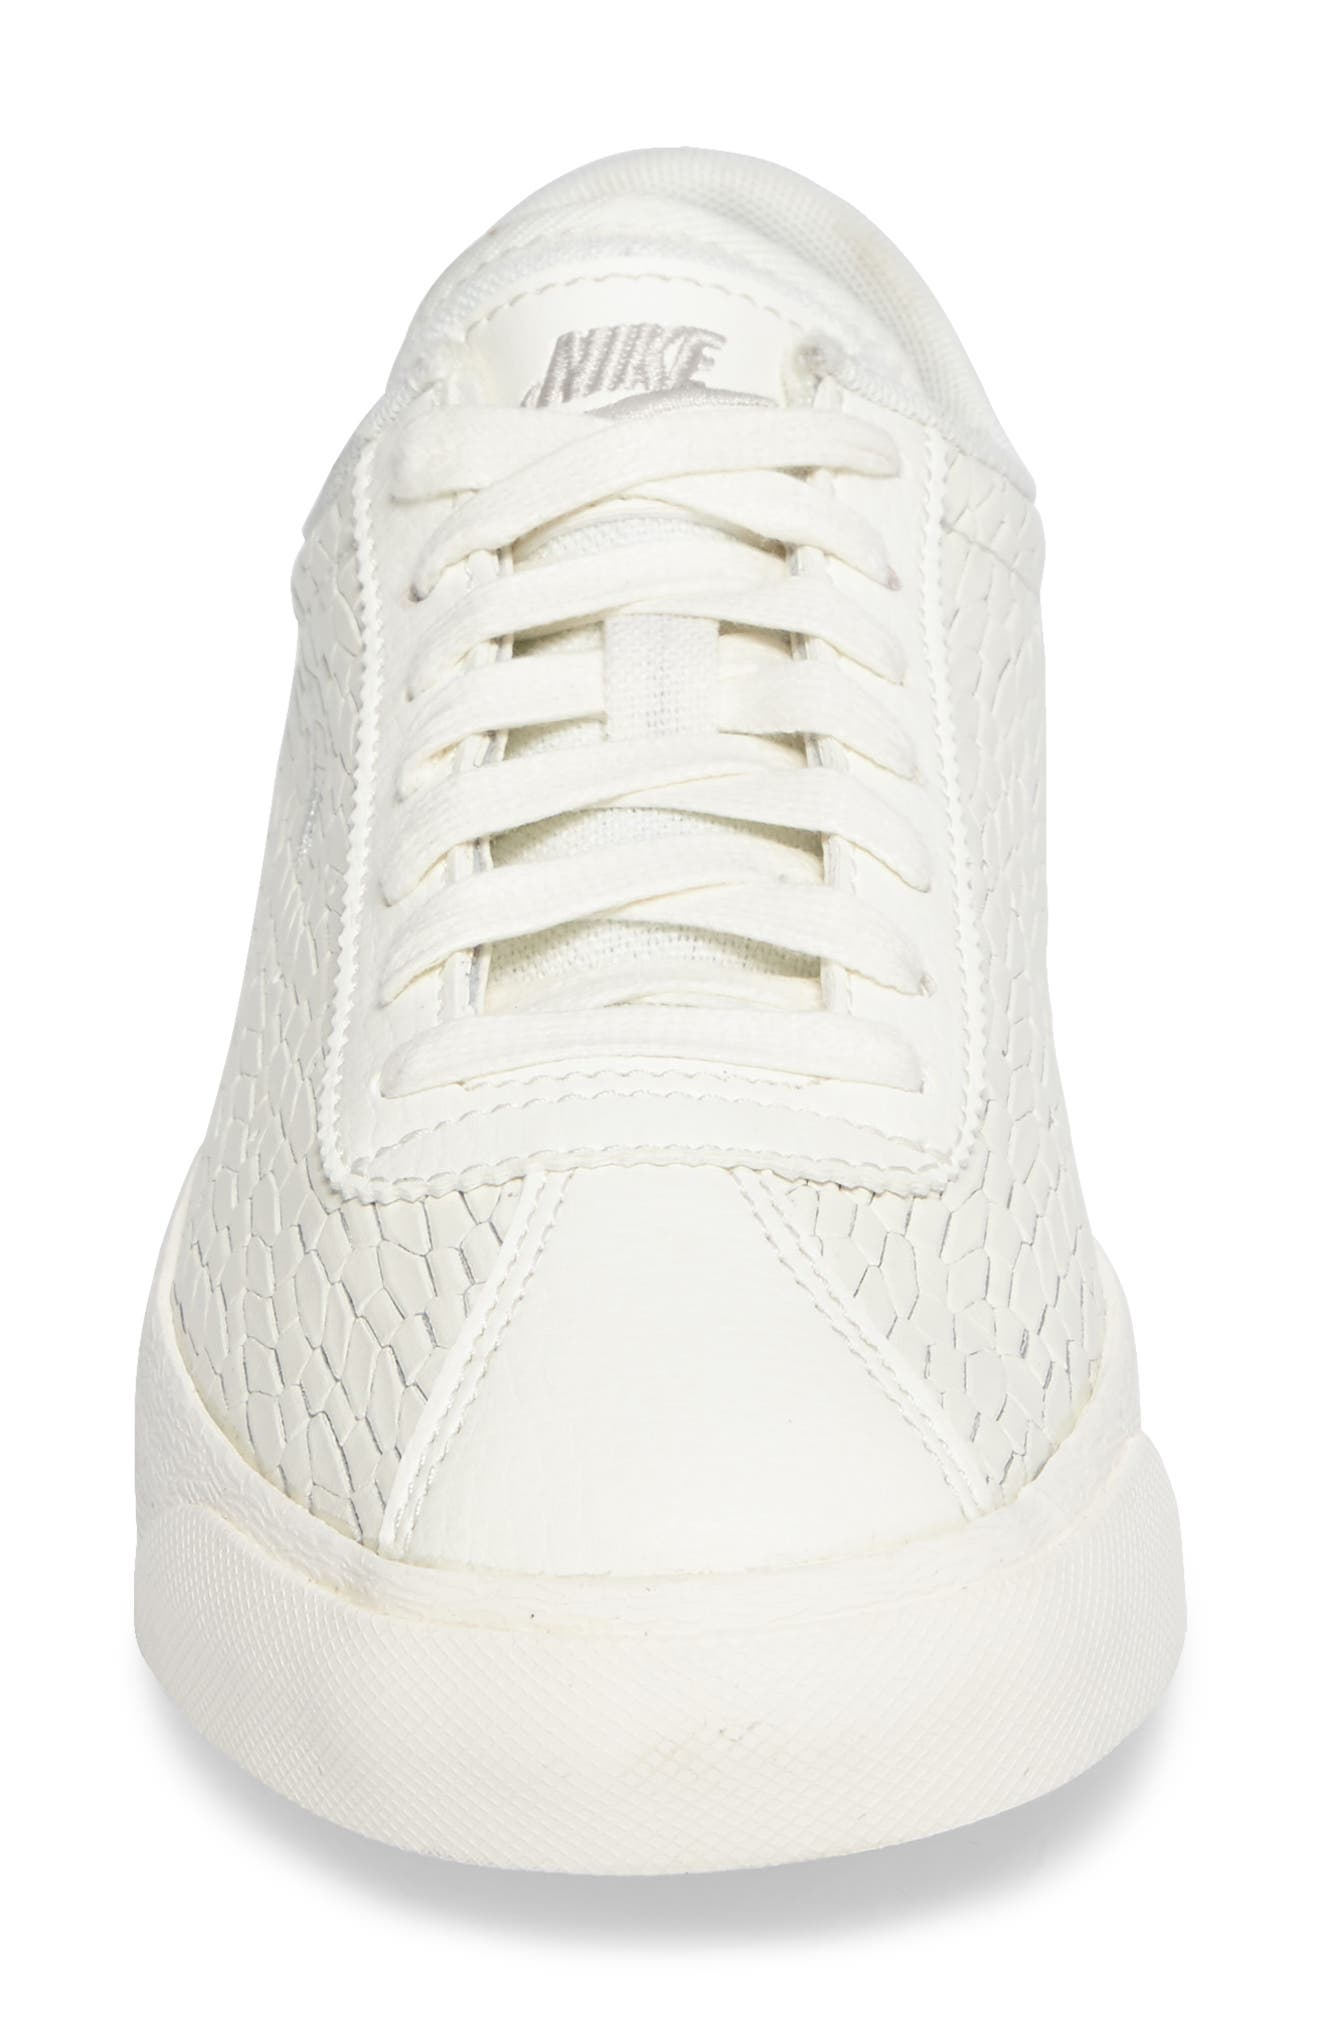 Match Classic Sneaker,                             Alternate thumbnail 4, color,                             250